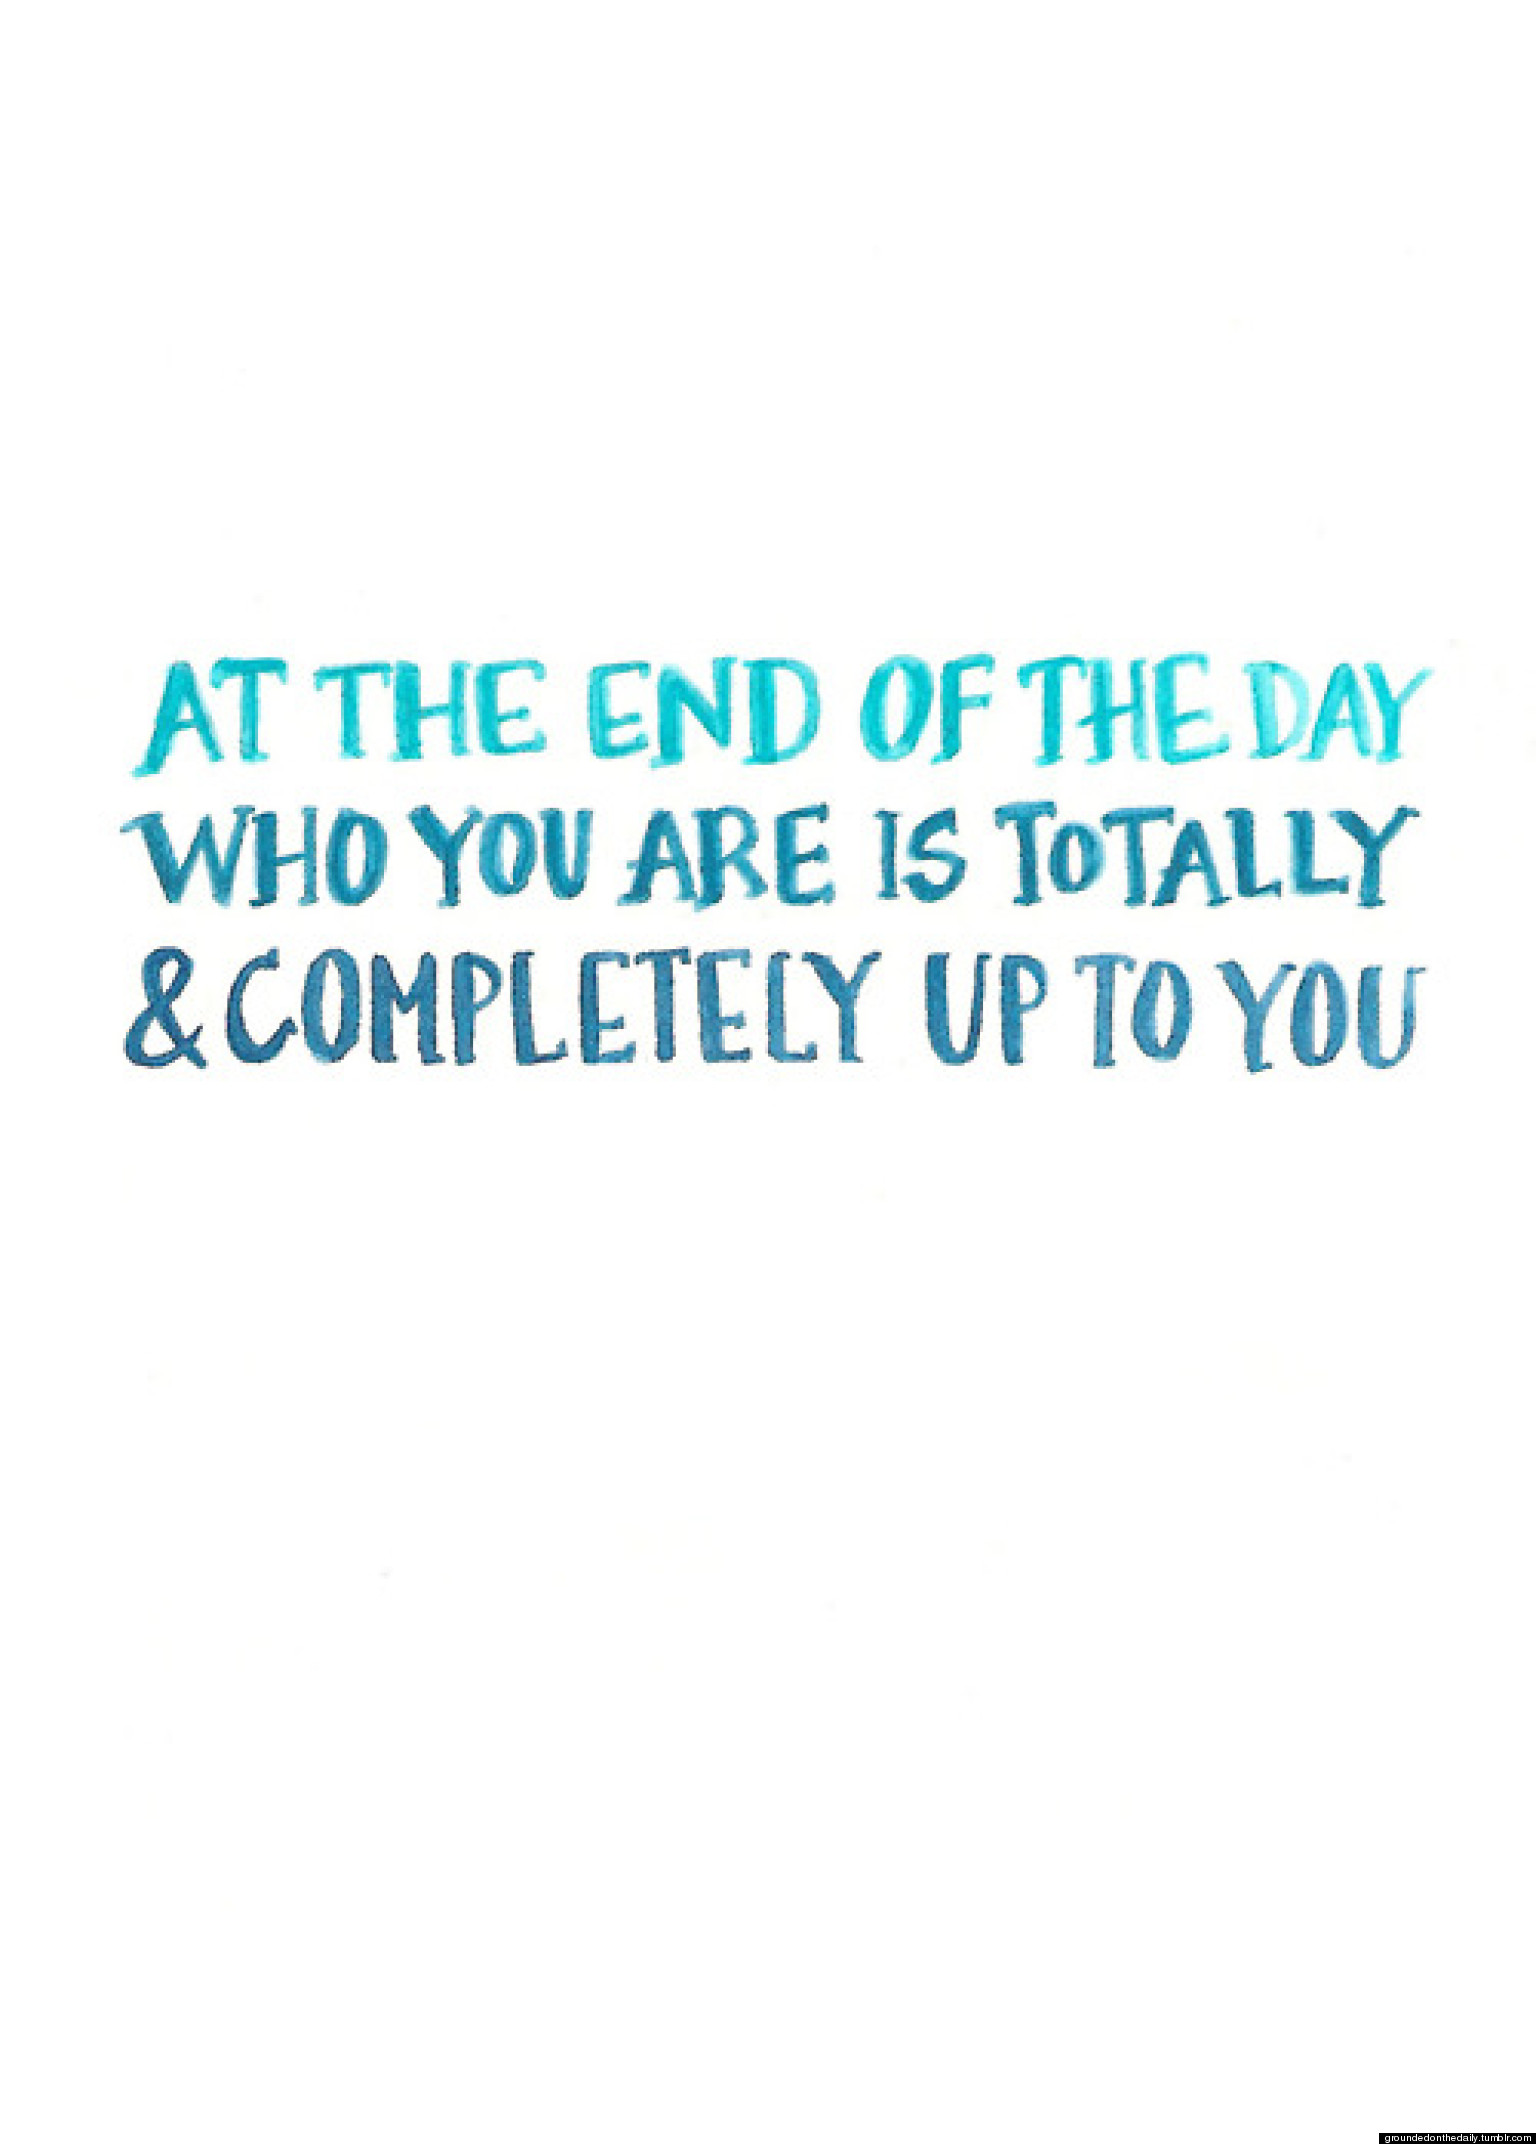 Inspirational Quotes To Get You Through The Week (May 27, 2013) | HuffPost